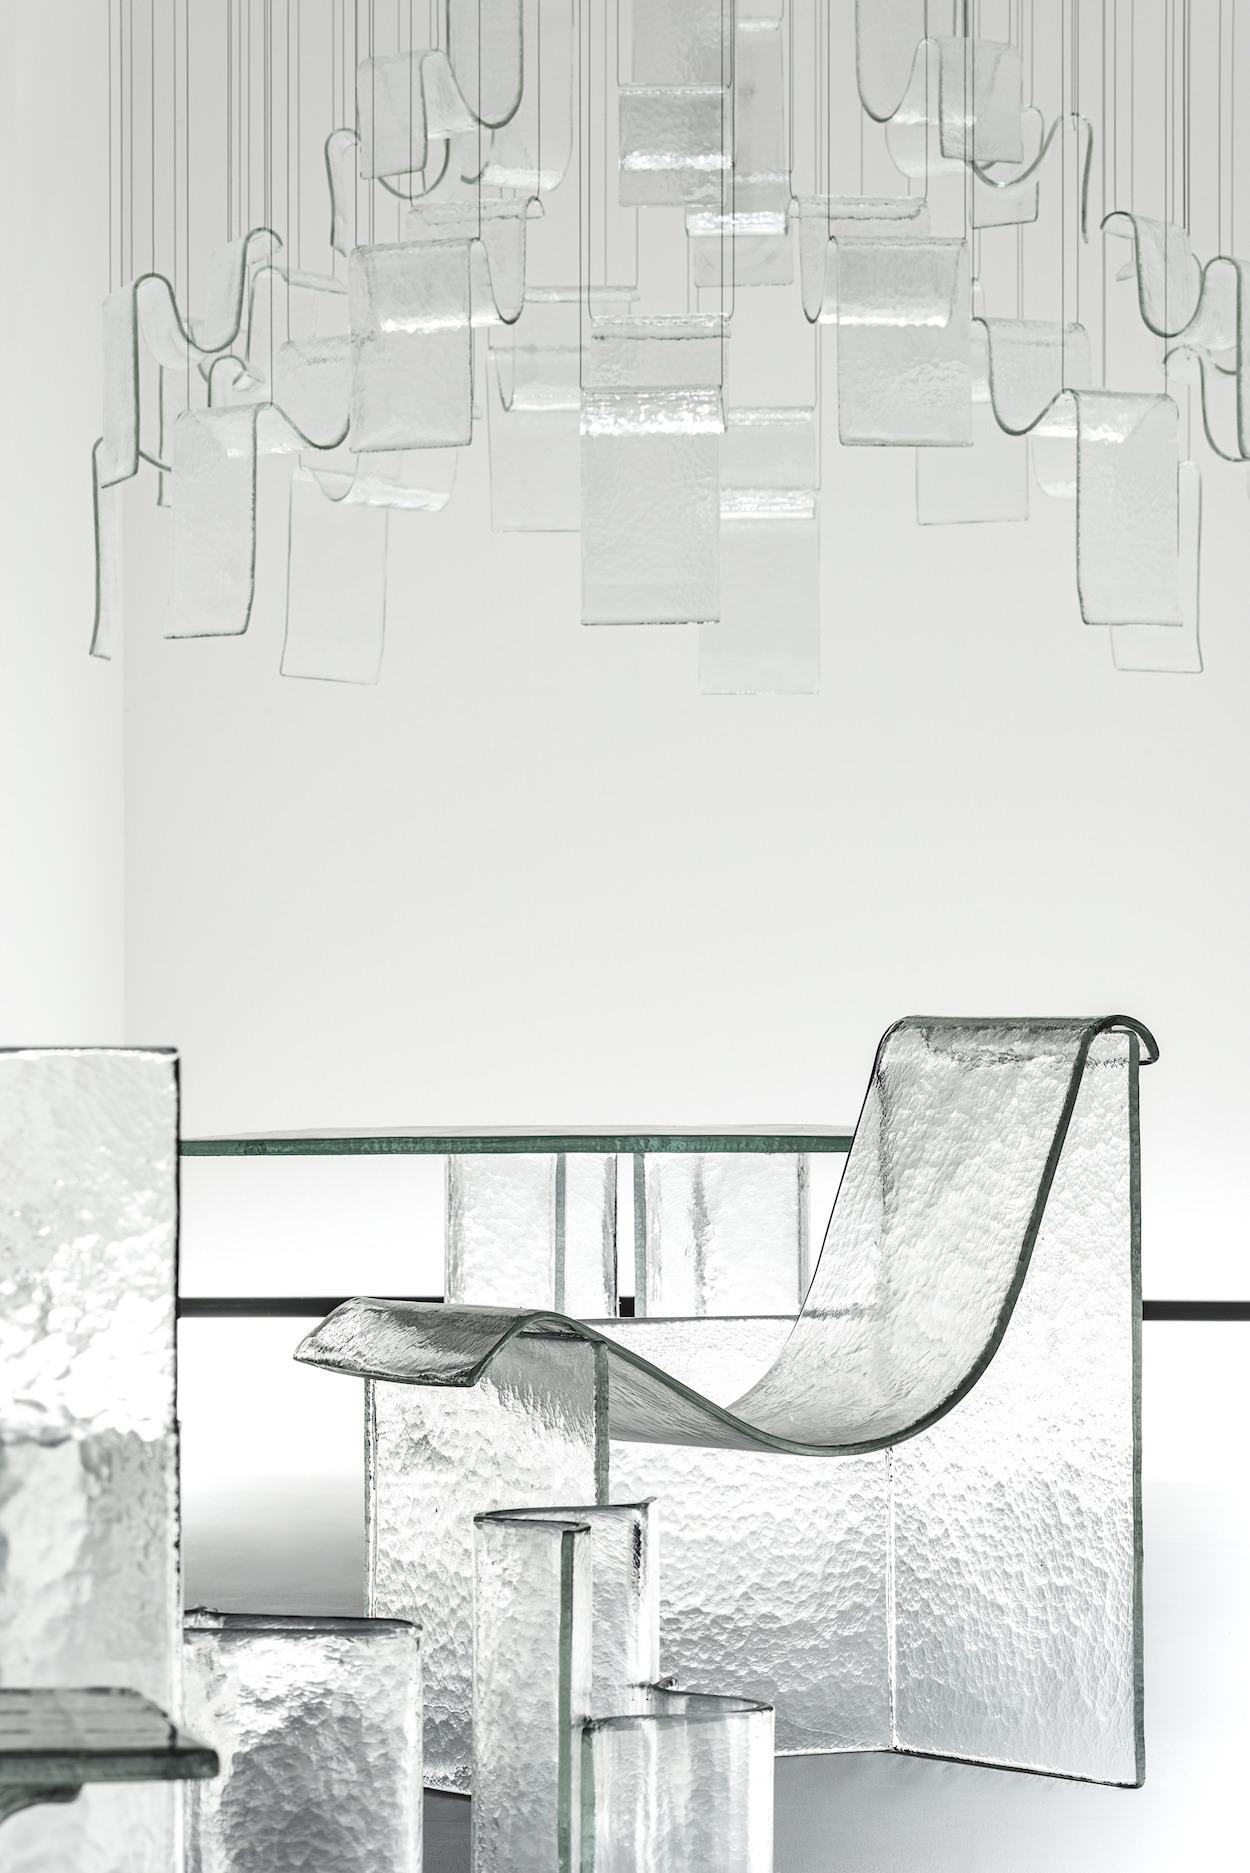 Nendo and WonderGlass' Melt Collection on Display in the Shape of Gravity